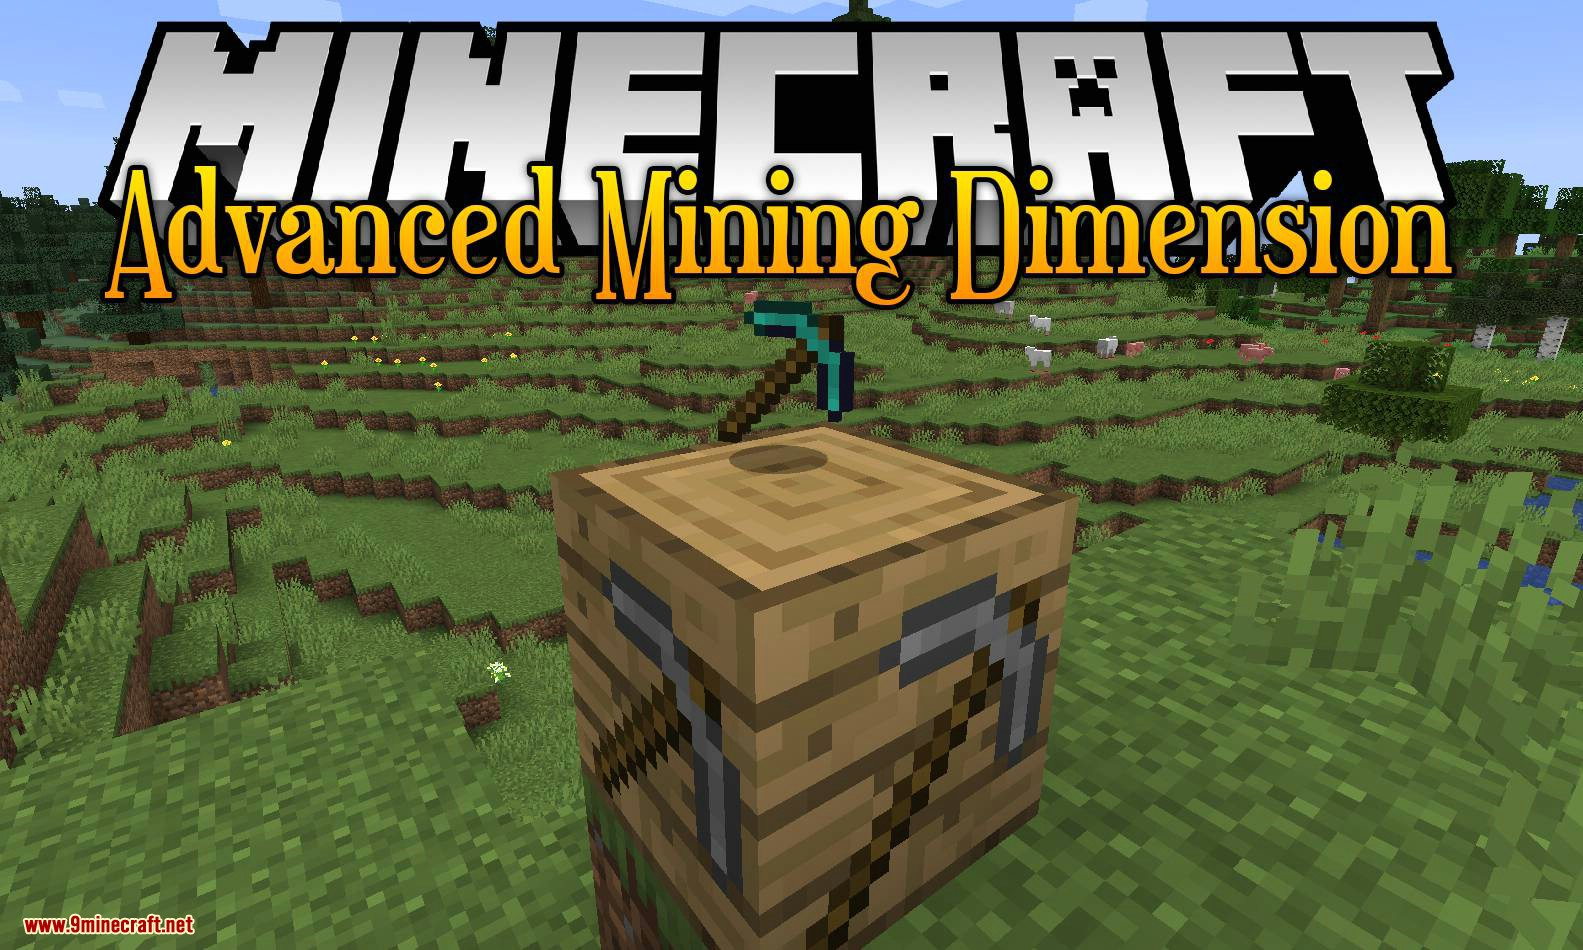 Advanced Mining Dimension mod for minecraft logo